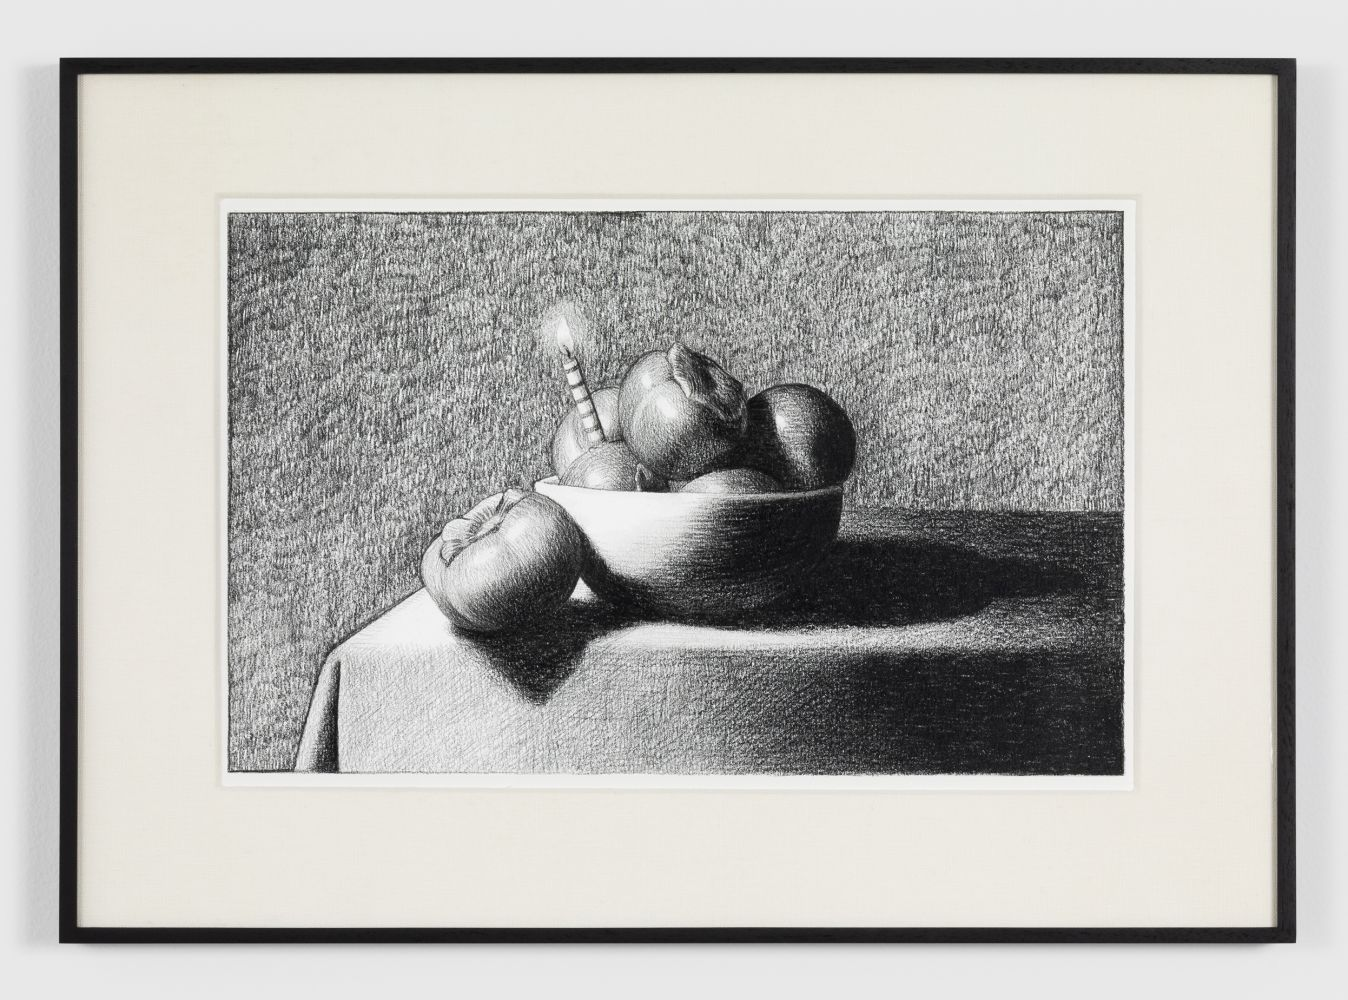 Anna Weyant Untitled, 2020 Graphite on paper 7 1/2 x 11 in, 19.1 x 27.9 cm (unframed) 13 x 17 in, 33 x 43.2 cm (framed) (AW20.004)